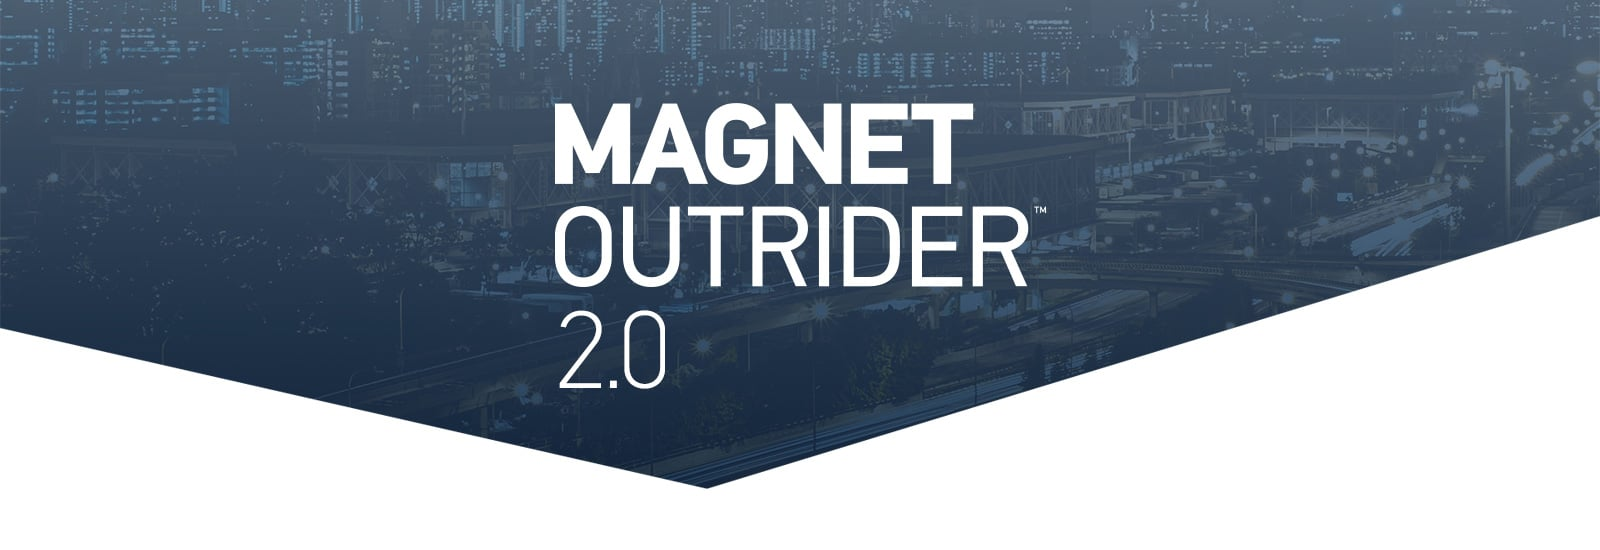 Magnet OUTRIDER 2.0